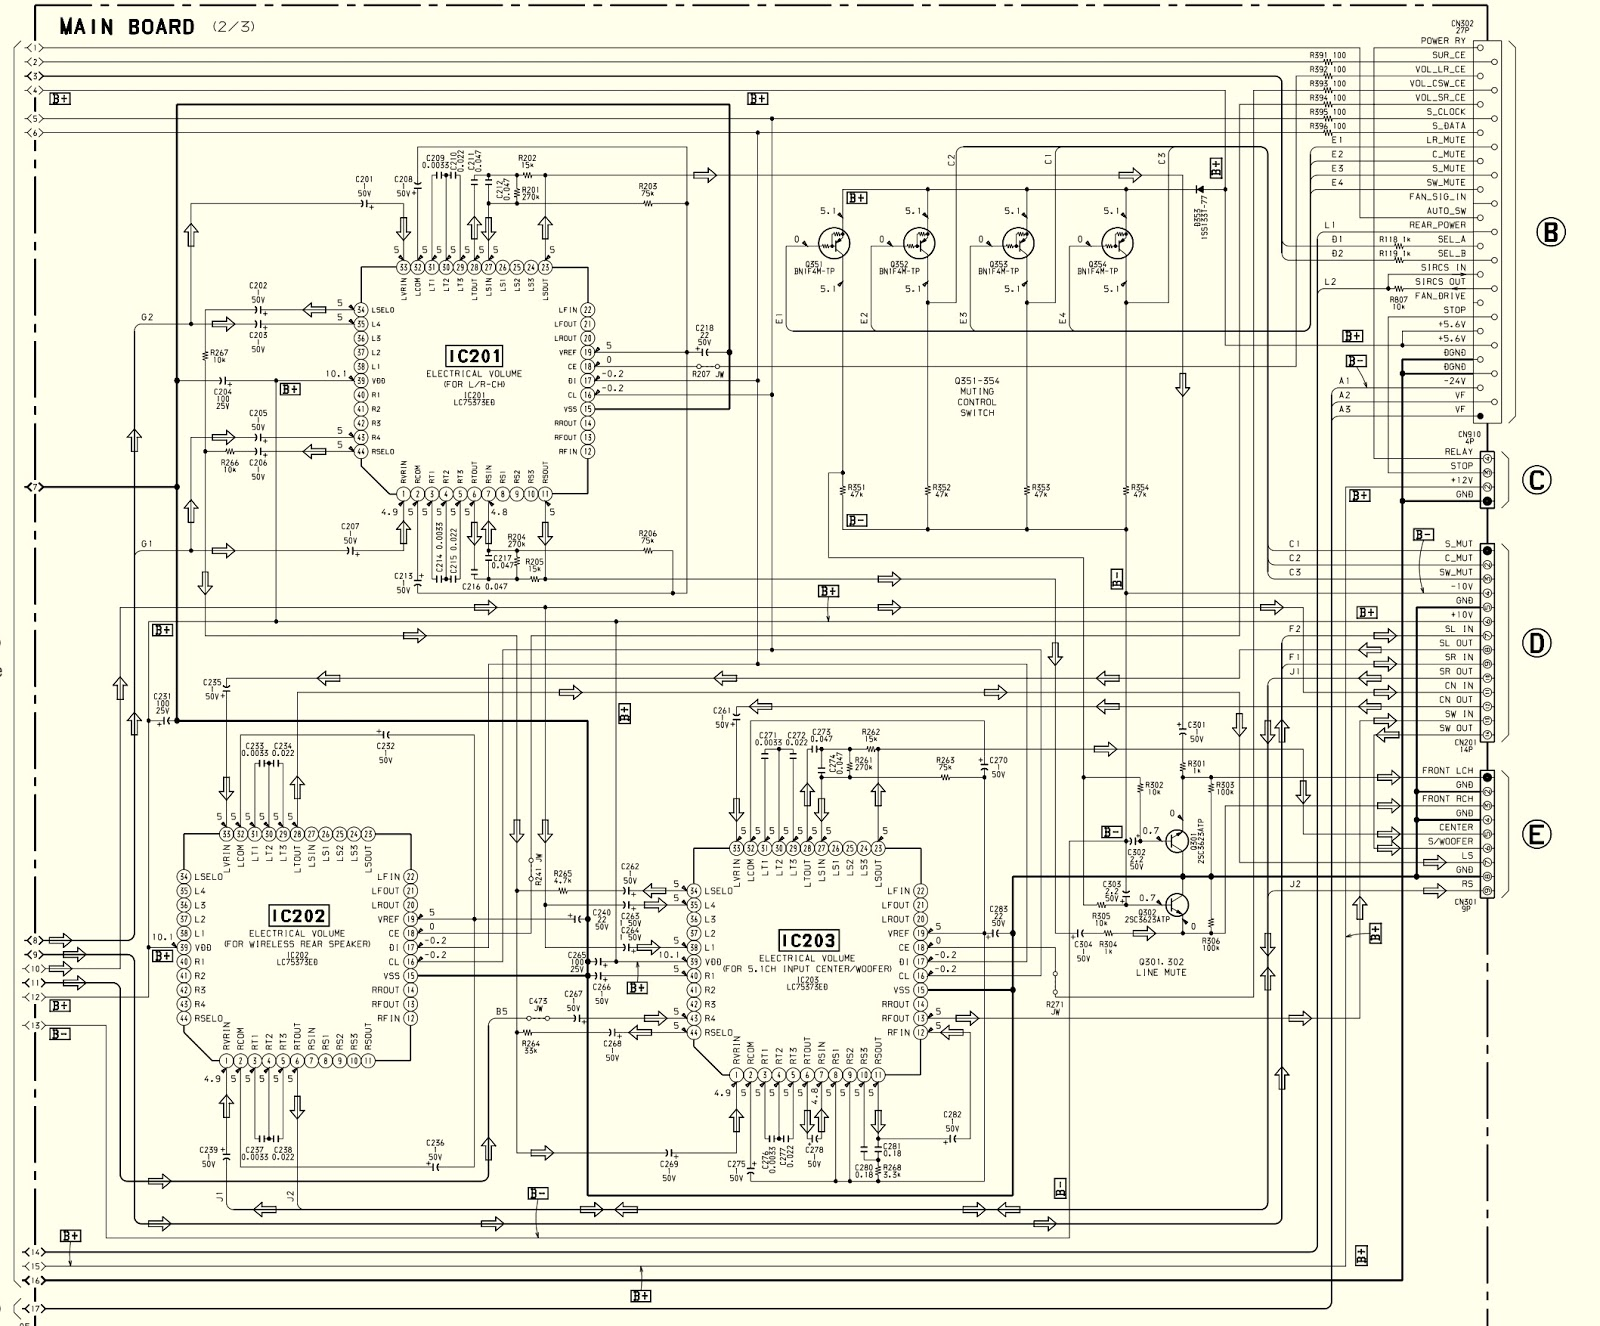 7 1 home theater circuit diagram 1990 ford fuel system sony sava 500 test mode  schematic